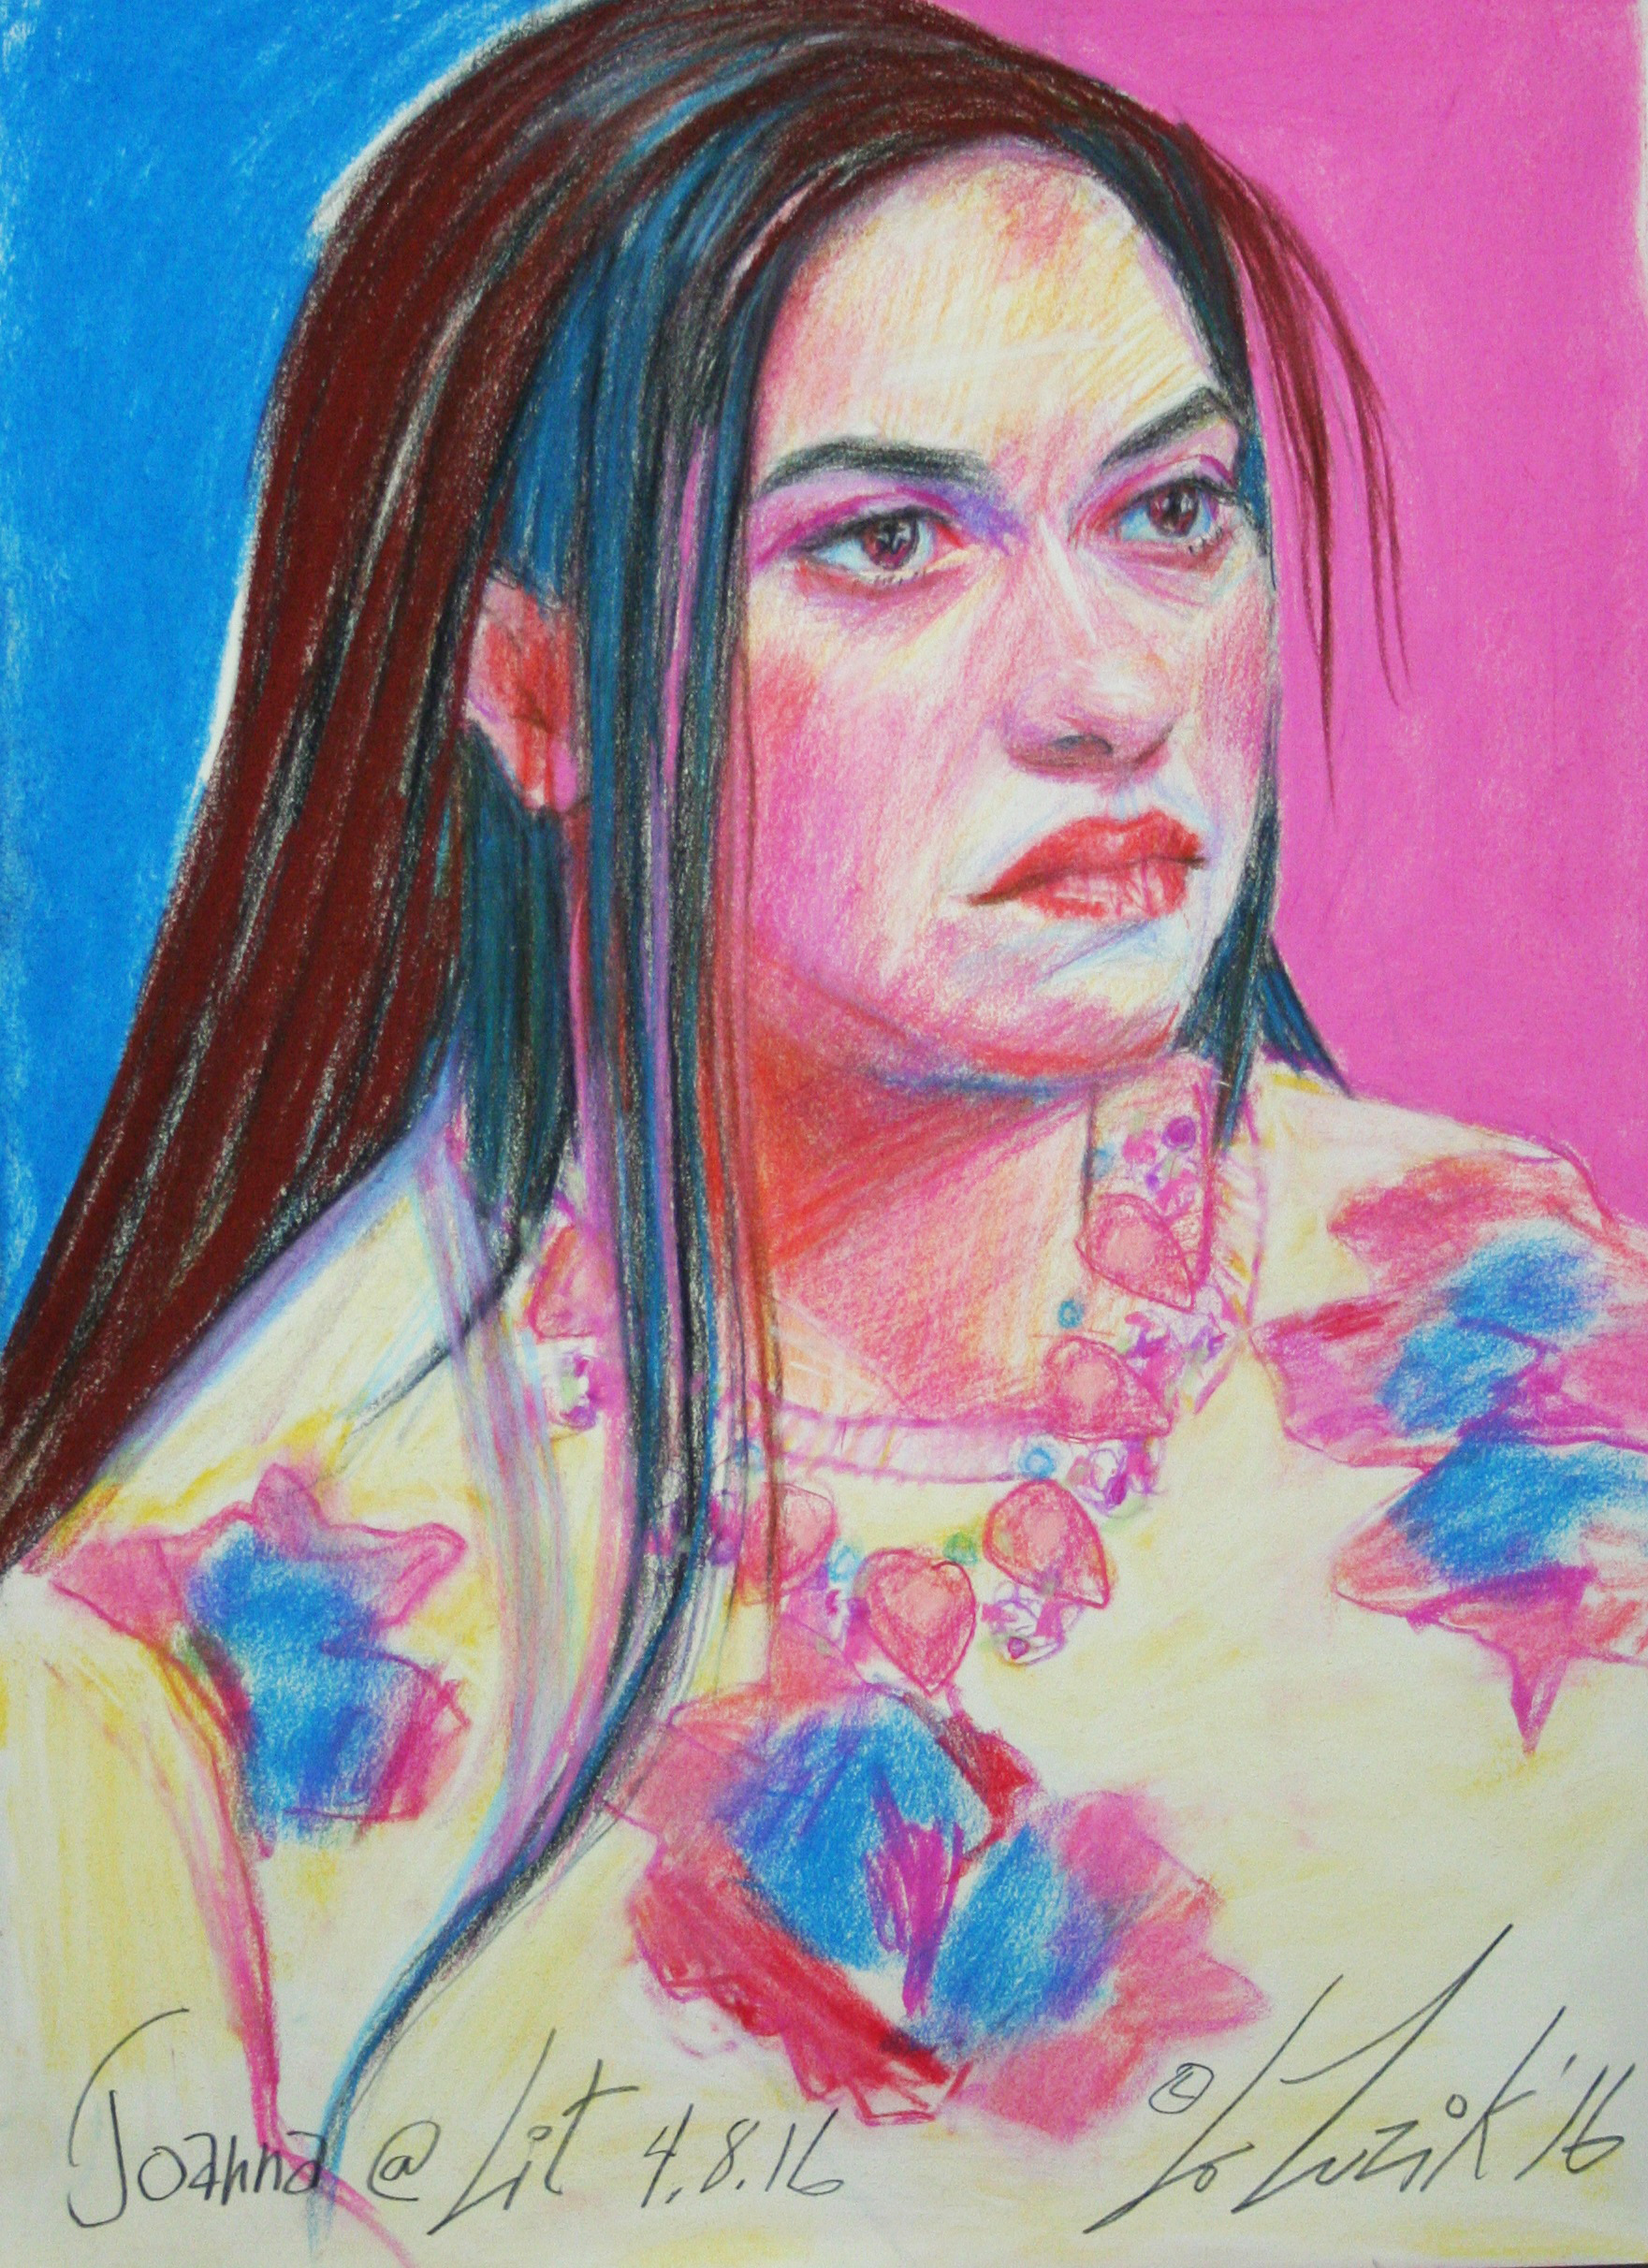 Larry Zuzik did this 3-hour pastel drawing .